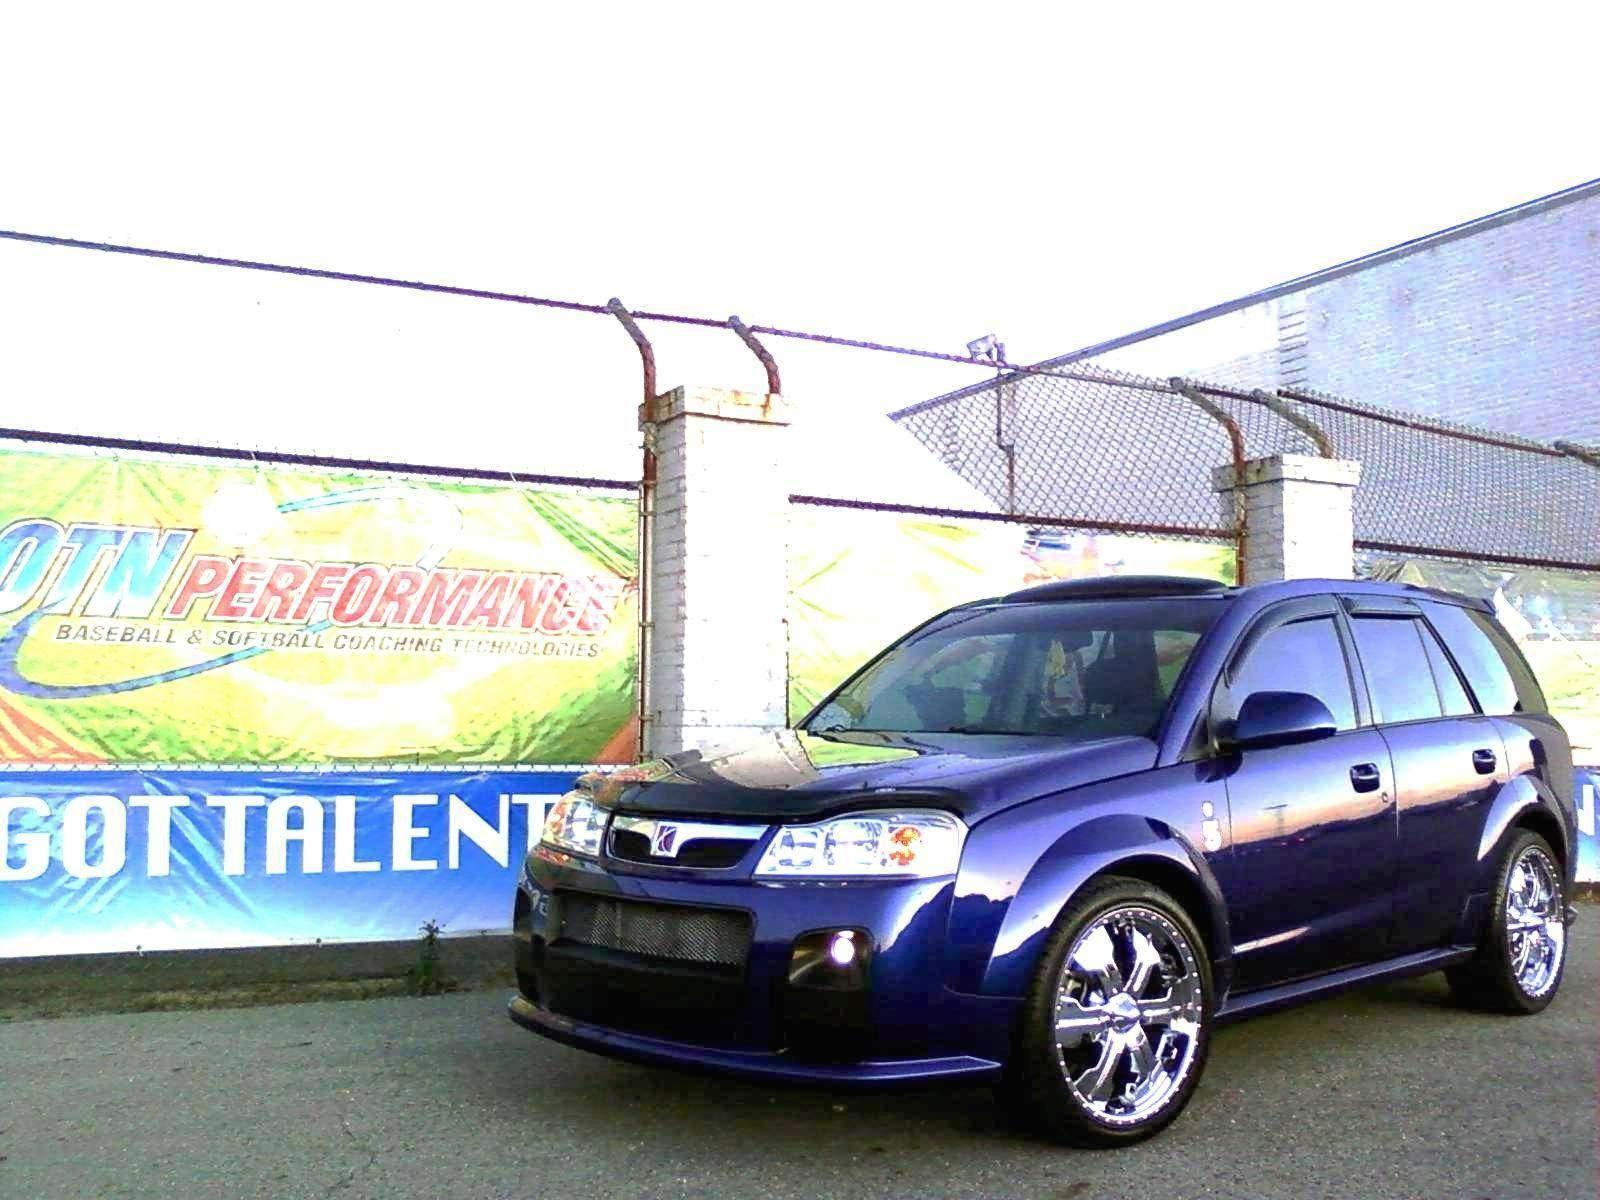 stealthboy51272's 2006 Saturn VUE